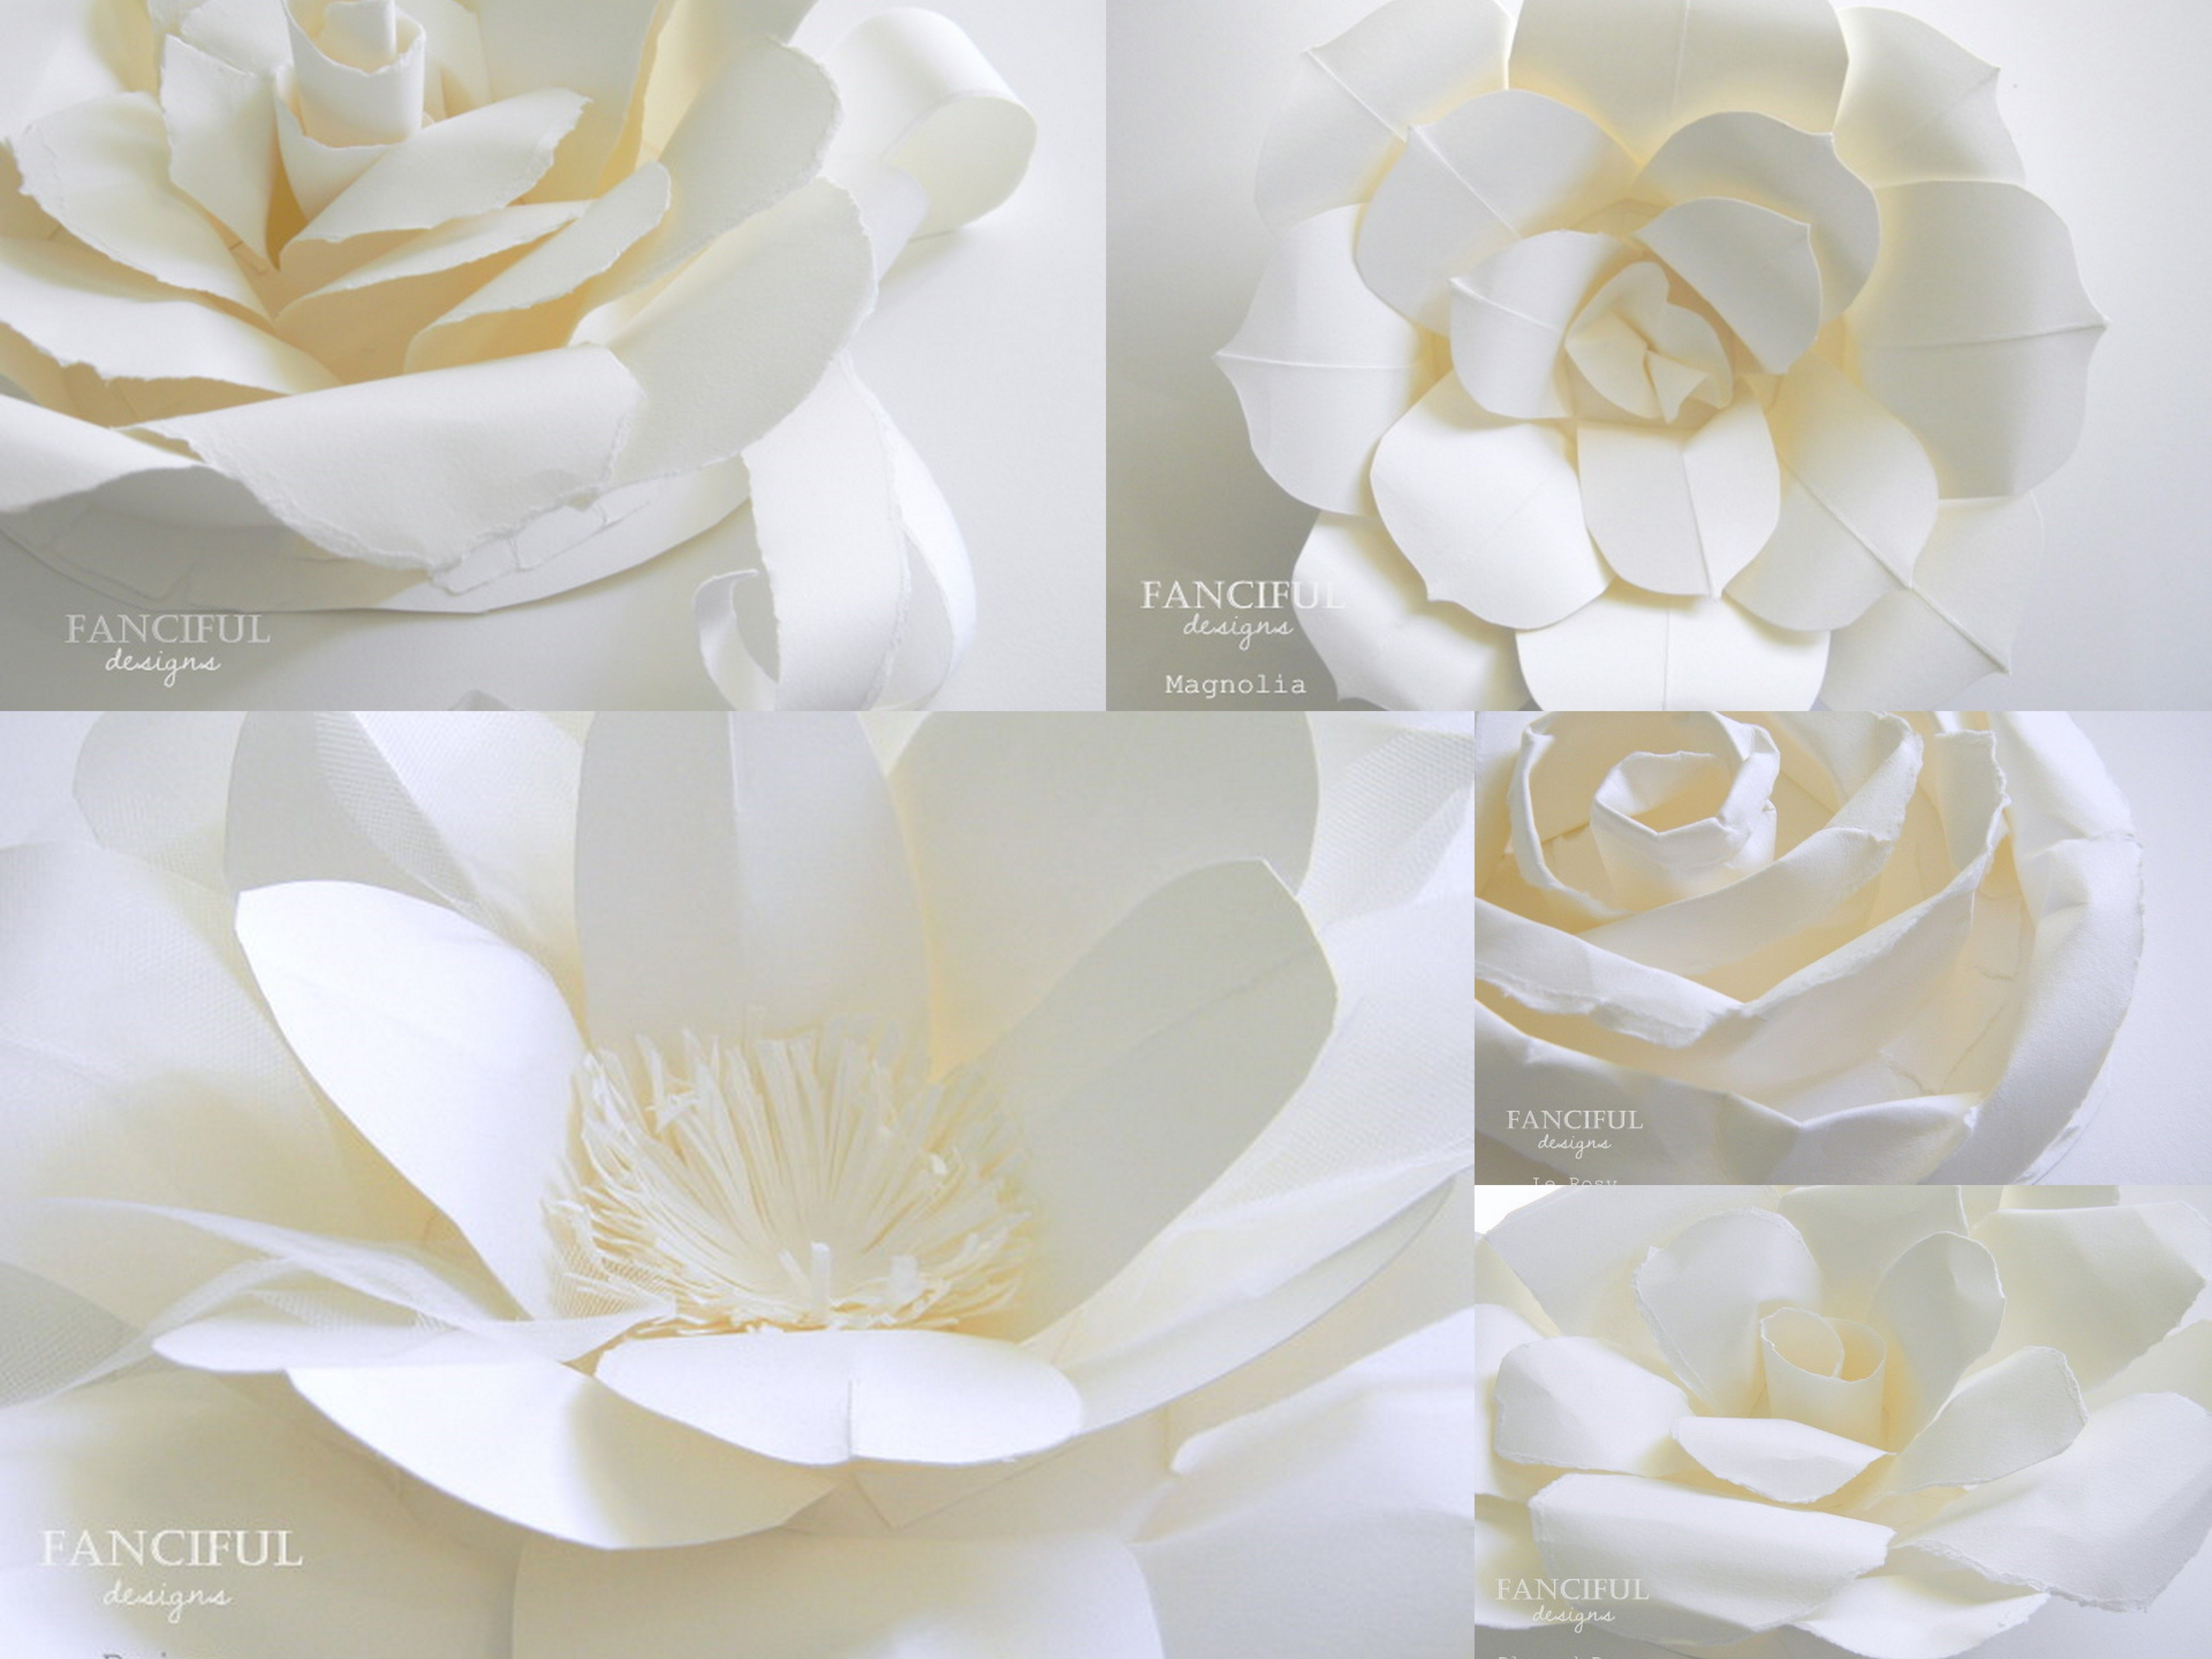 Fanciful designs product paper flowers large paper